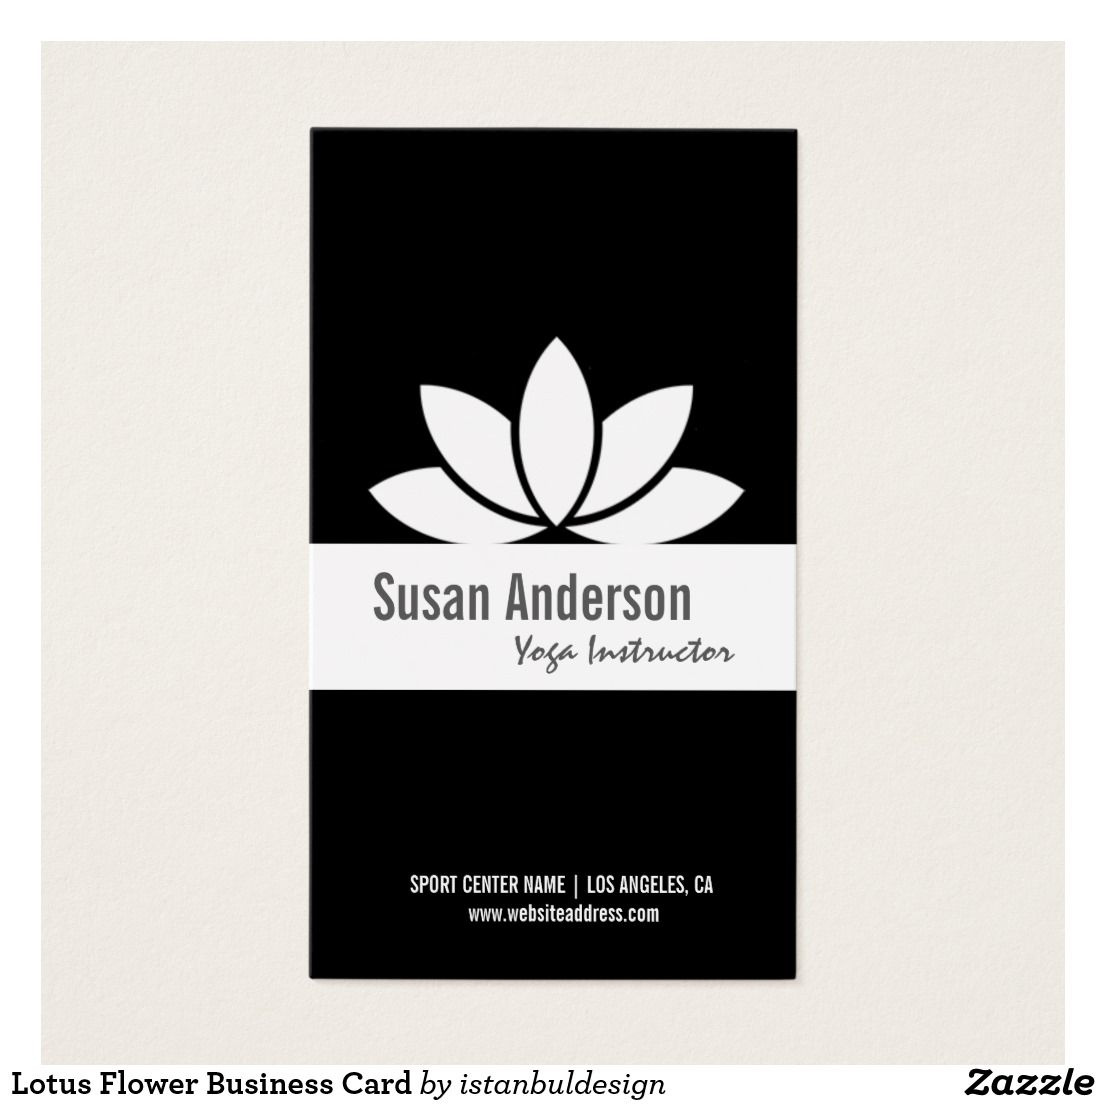 Lotus flower business card business cards lotus flower business card colourmoves